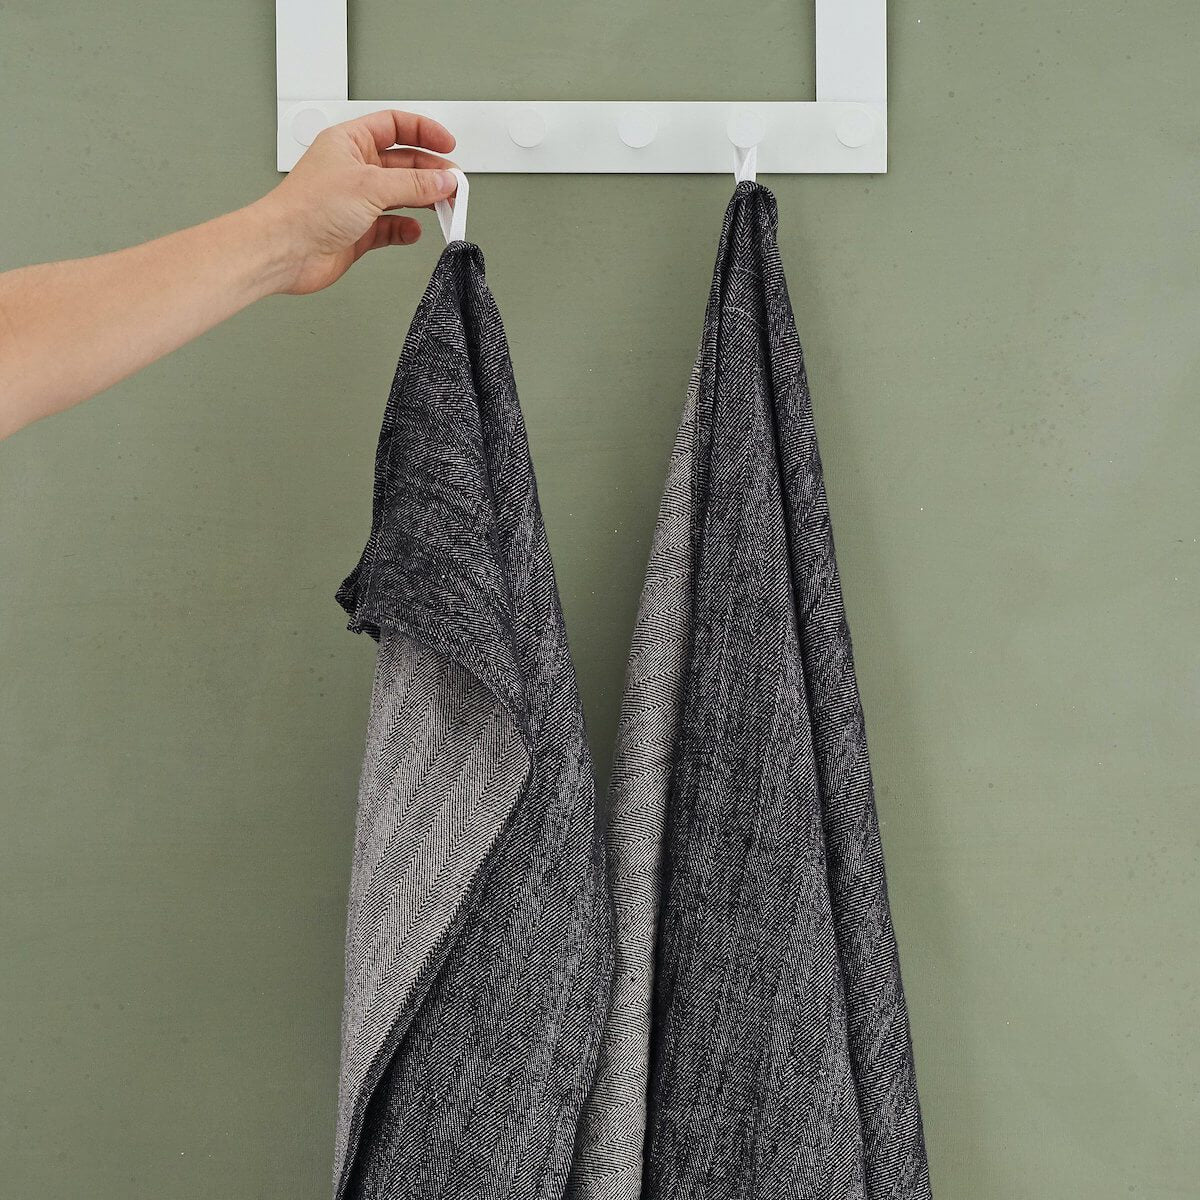 linen hand towels being hung on wall